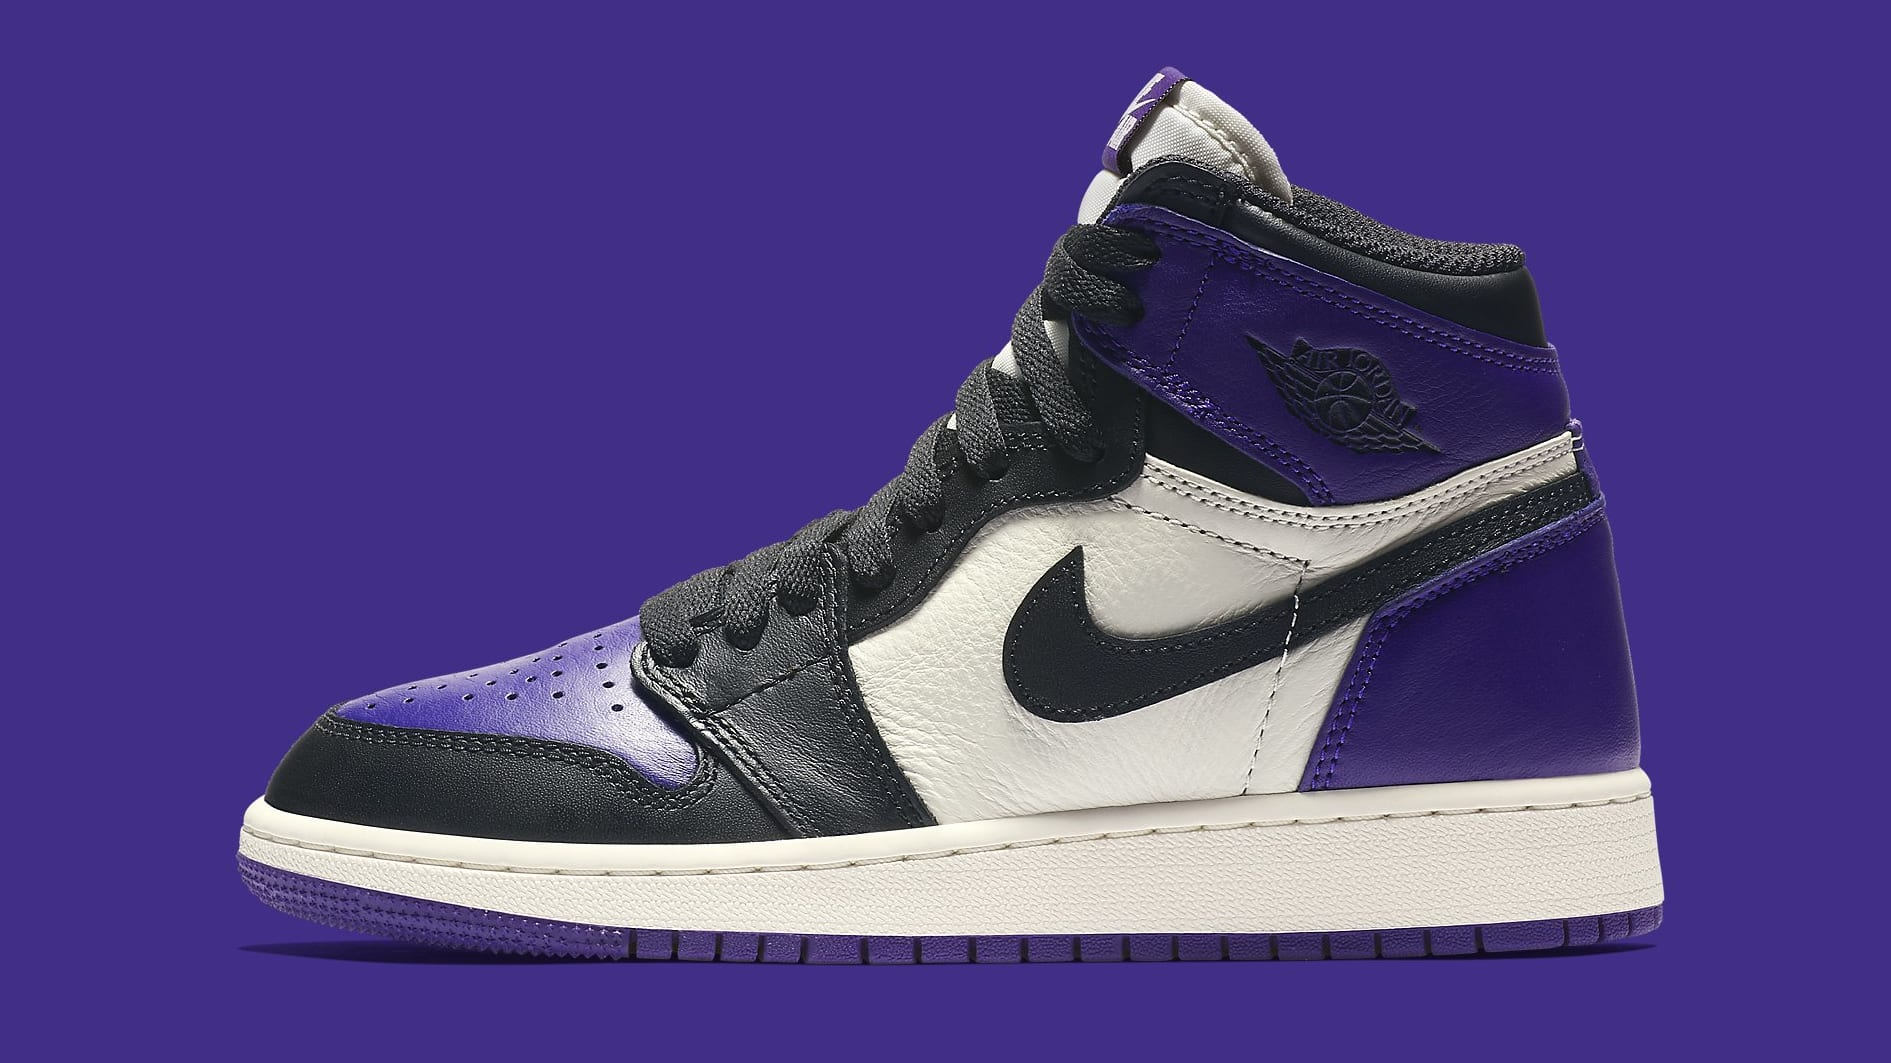 air-jordan-1-gs-court-purple-575441-501-lateral